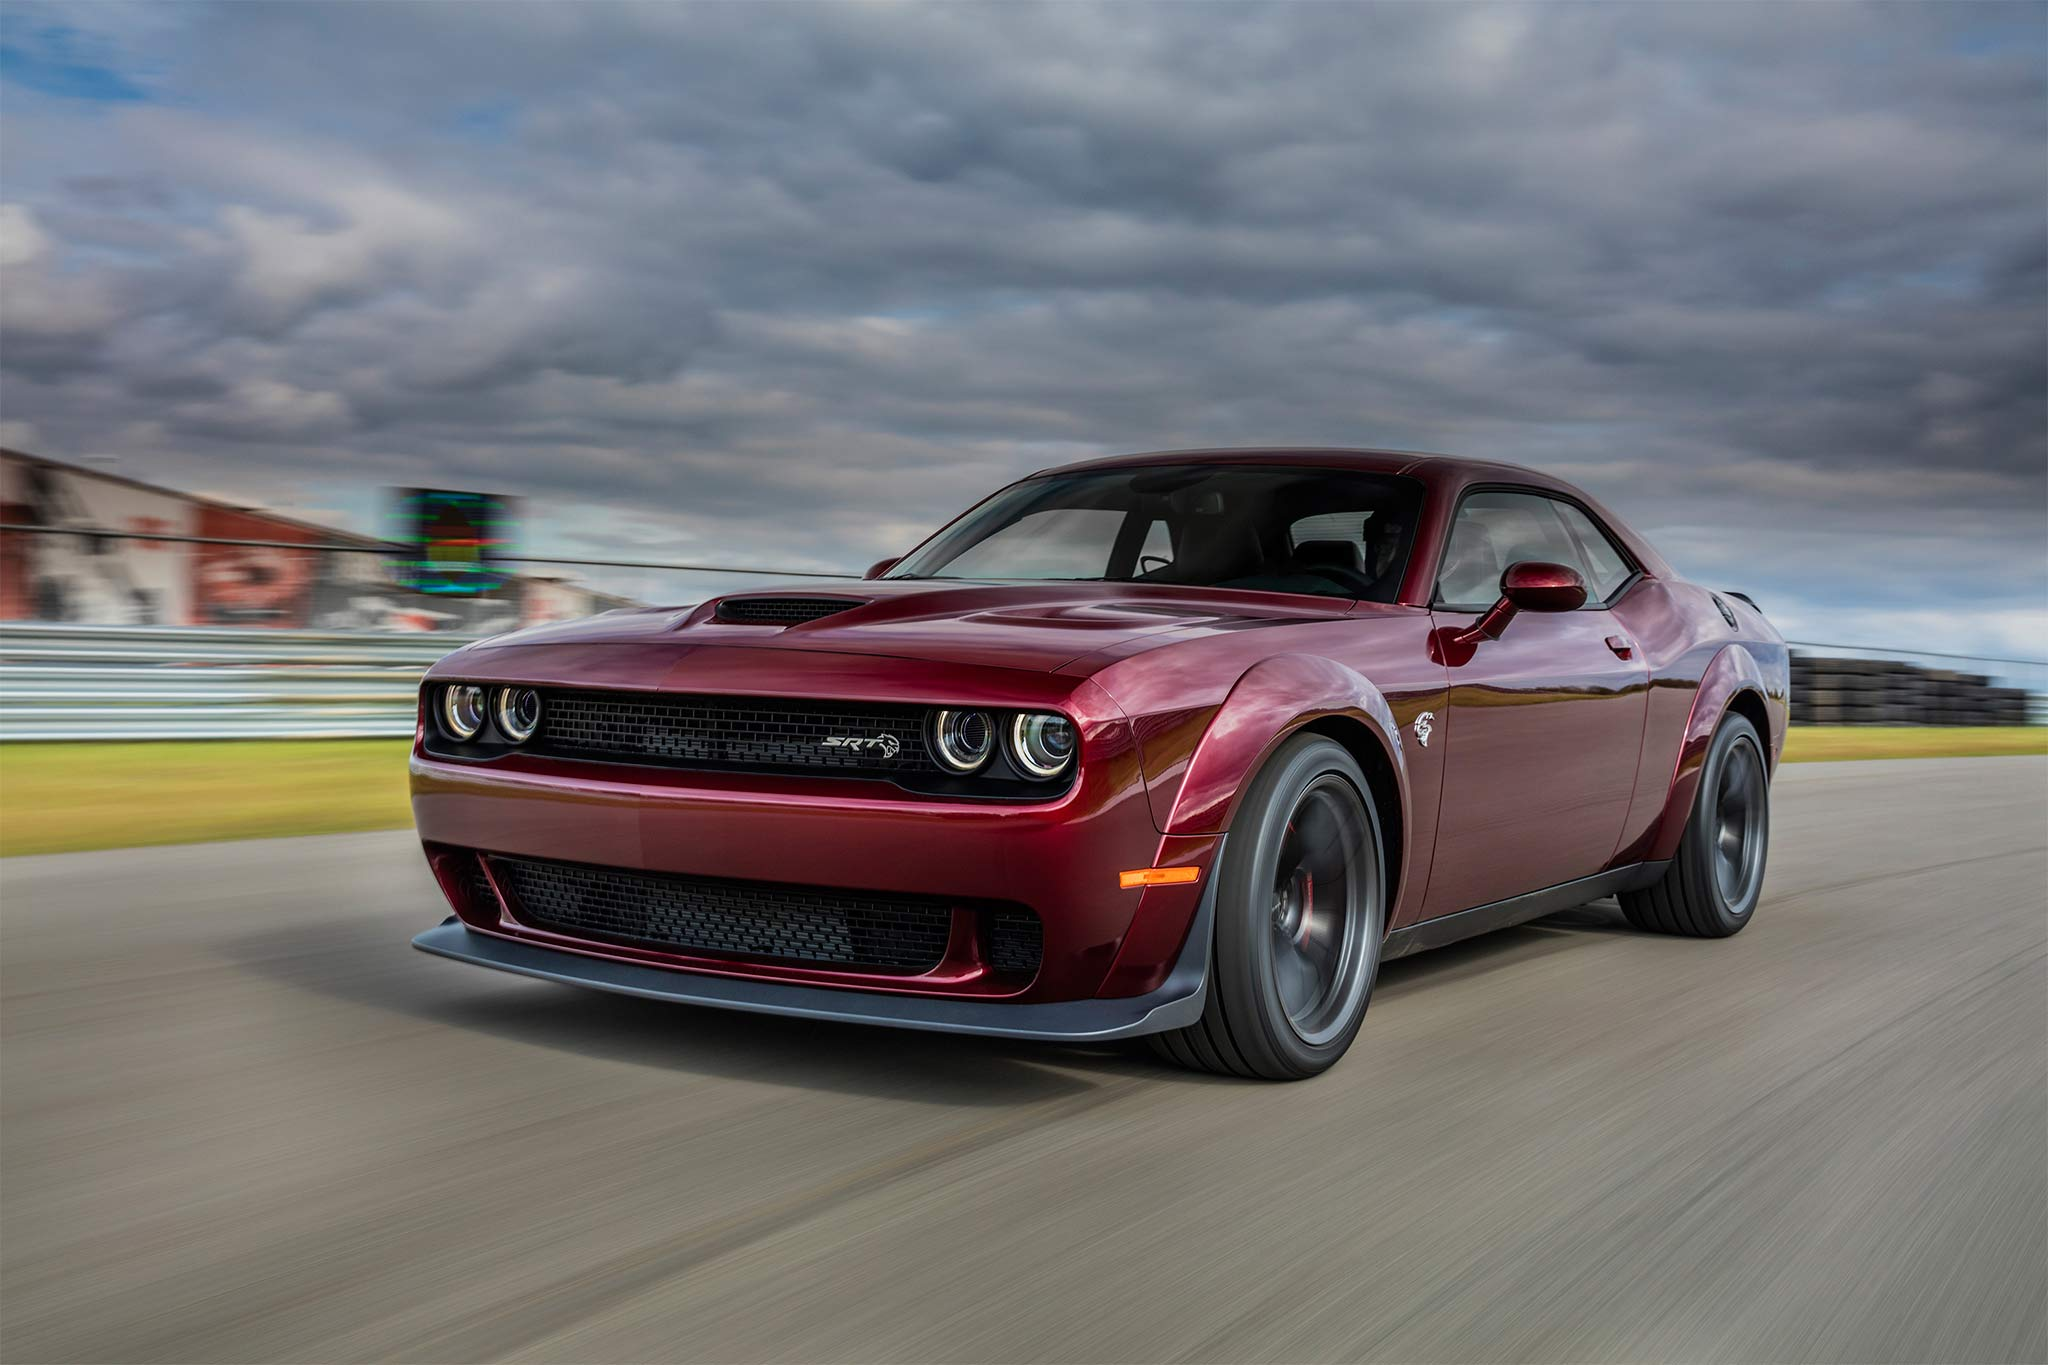 2018 Dodge Challenger SRT Hellcat front three quarter in motion 02